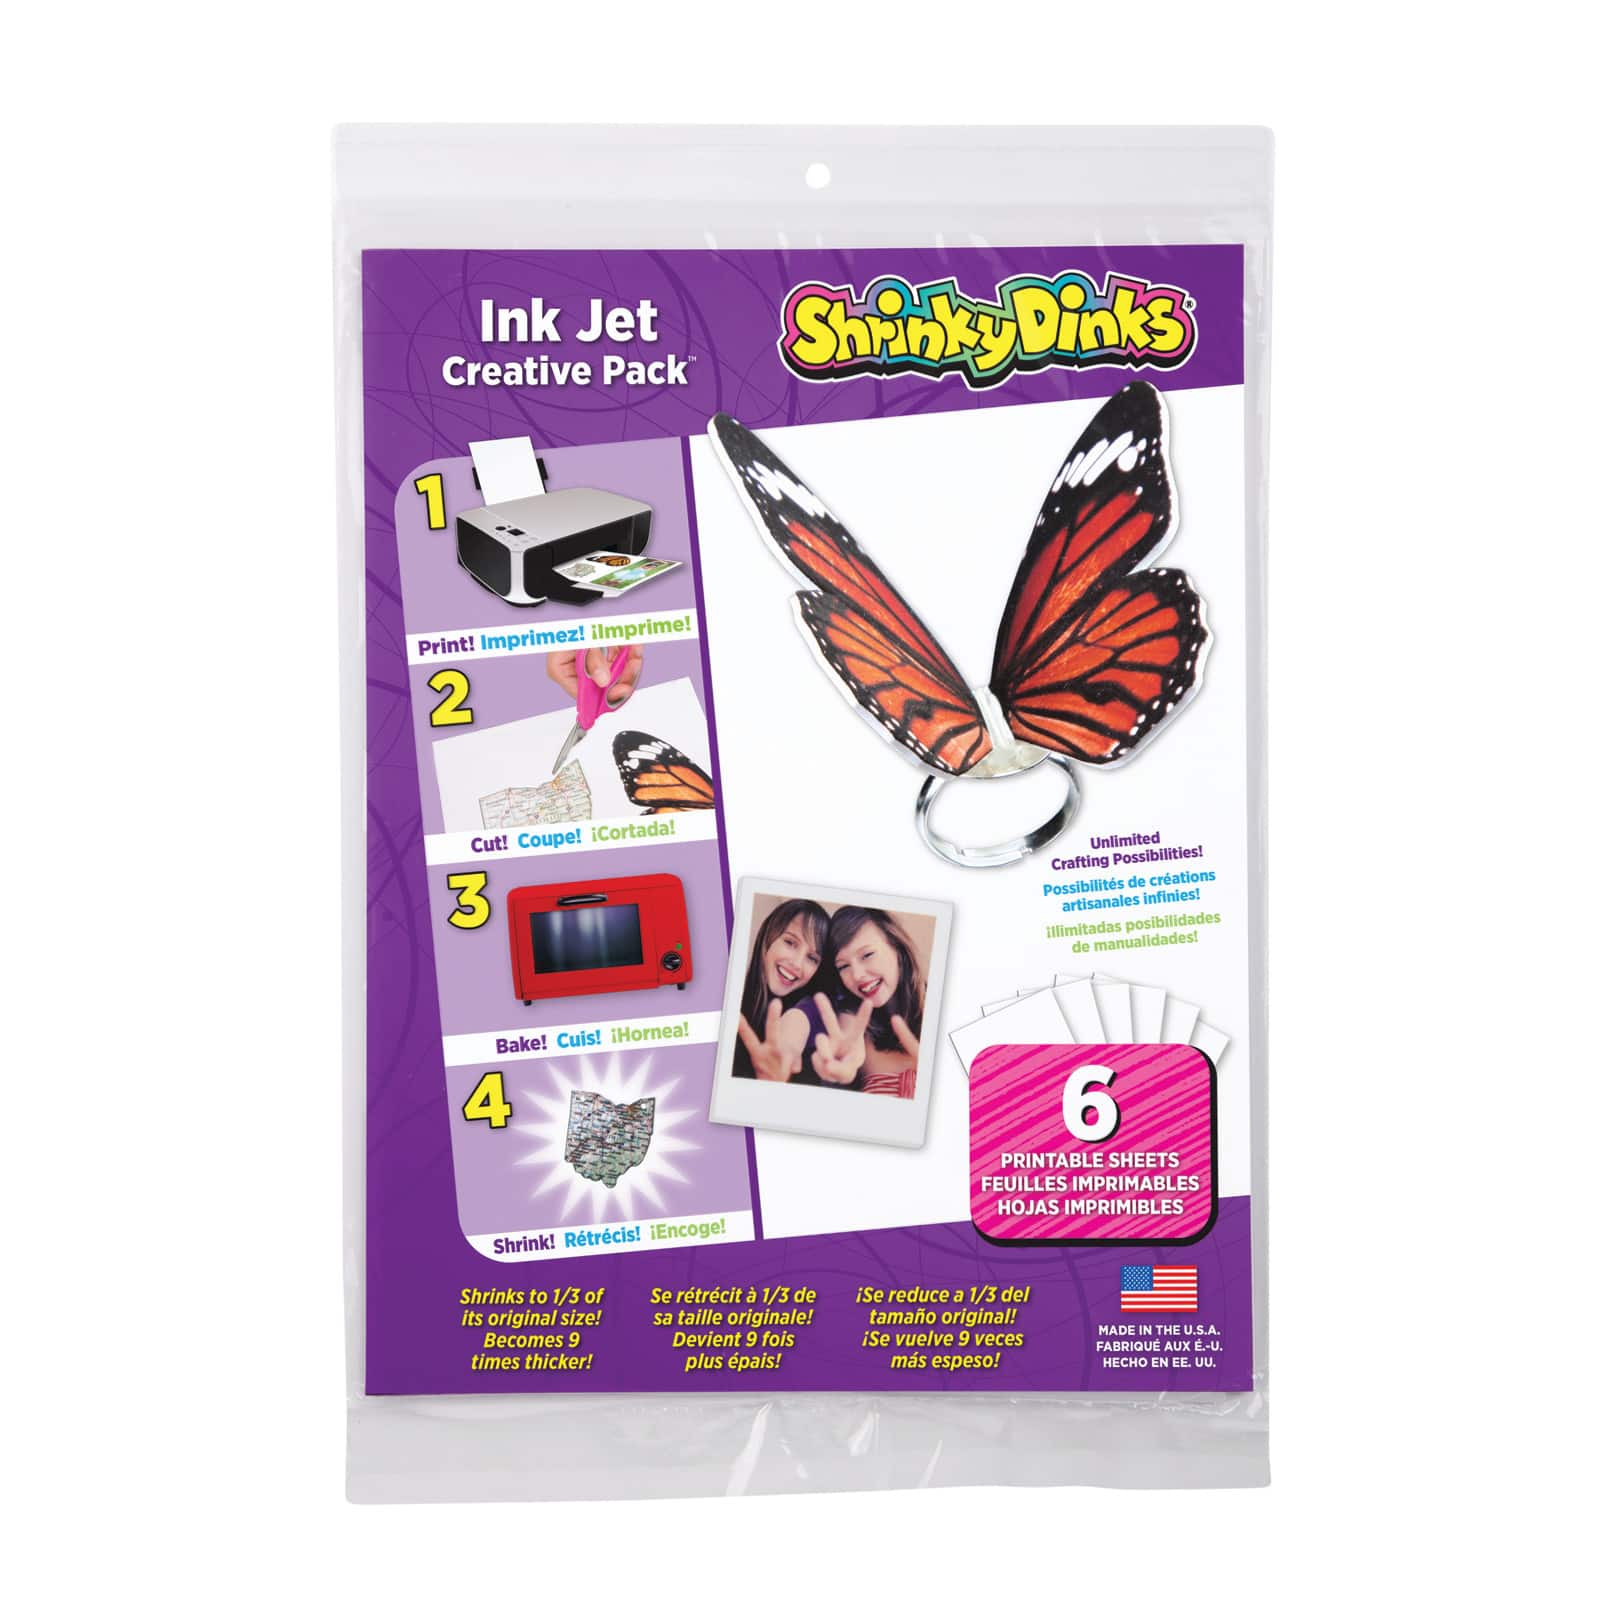 photograph regarding Printable Shrink Plastic referred to as Shrinky Dinks® Ink Jet Pack, 6ct.